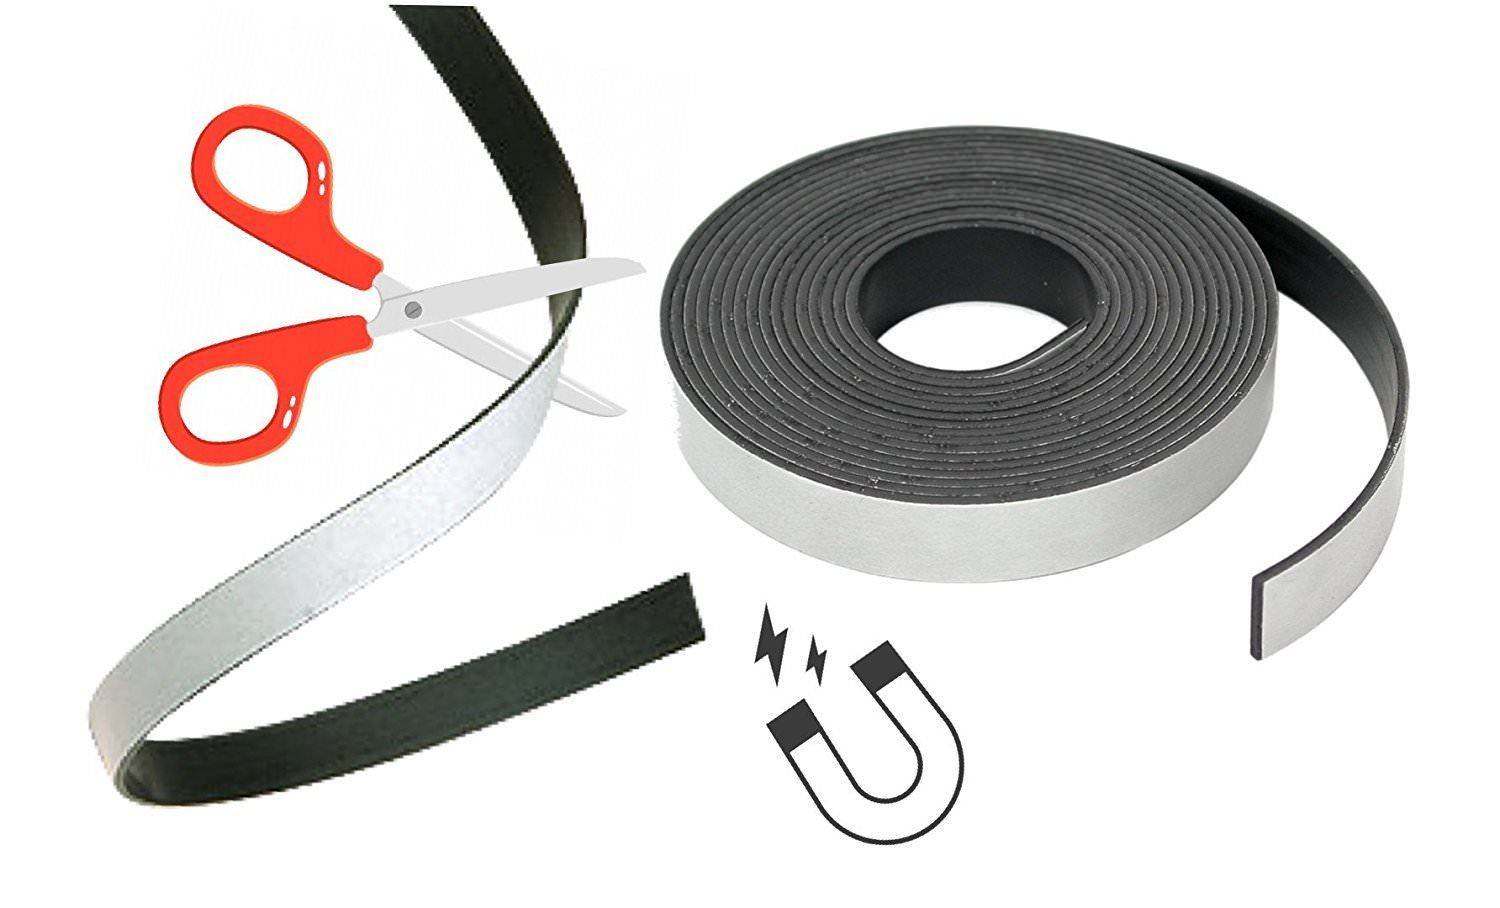 High Energy Magnetic Tape/Strips, Flexible Magnets - very strong